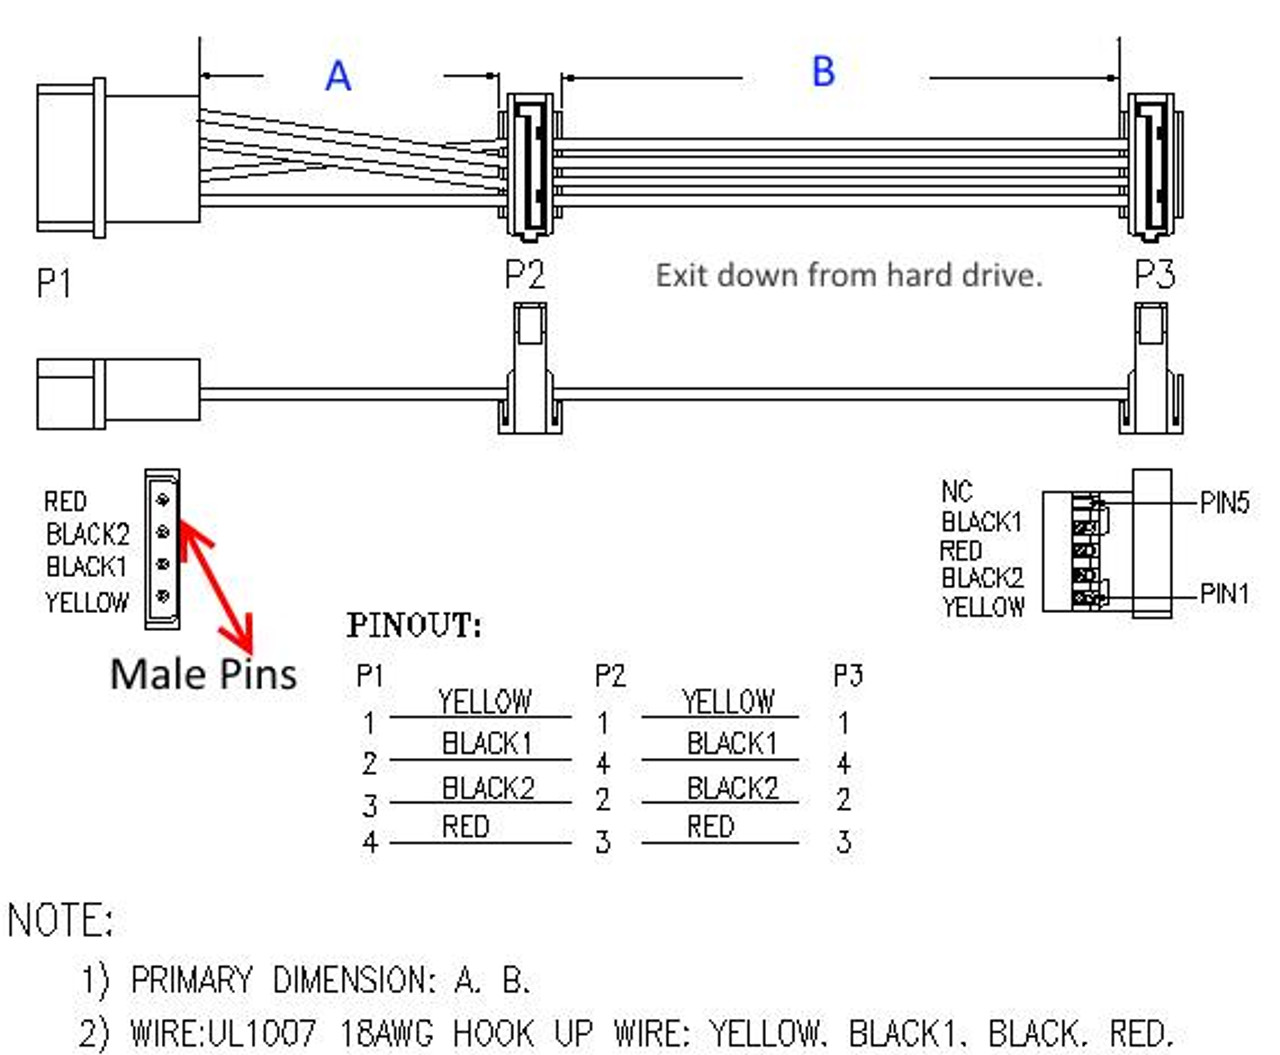 [ZSVE_7041]  Wiring Diagram Sata - Auto Wiring Diagram For Trailer Lights for Wiring  Diagram Schematics | Wiring Diagram Sata |  | Wiring Diagram Schematics